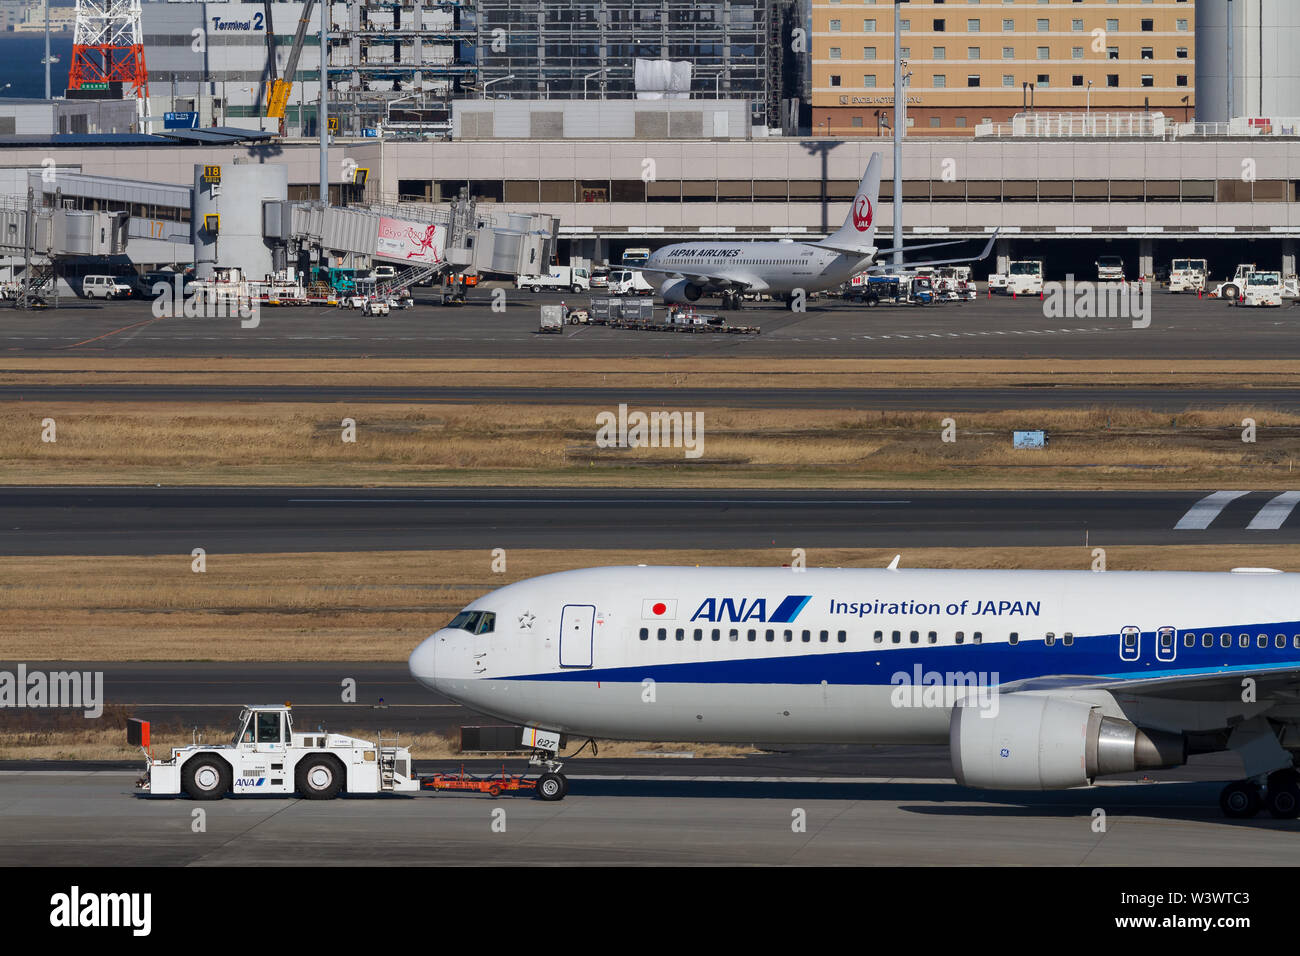 Boeing 767 Stock Photos & Boeing 767 Stock Images - Alamy